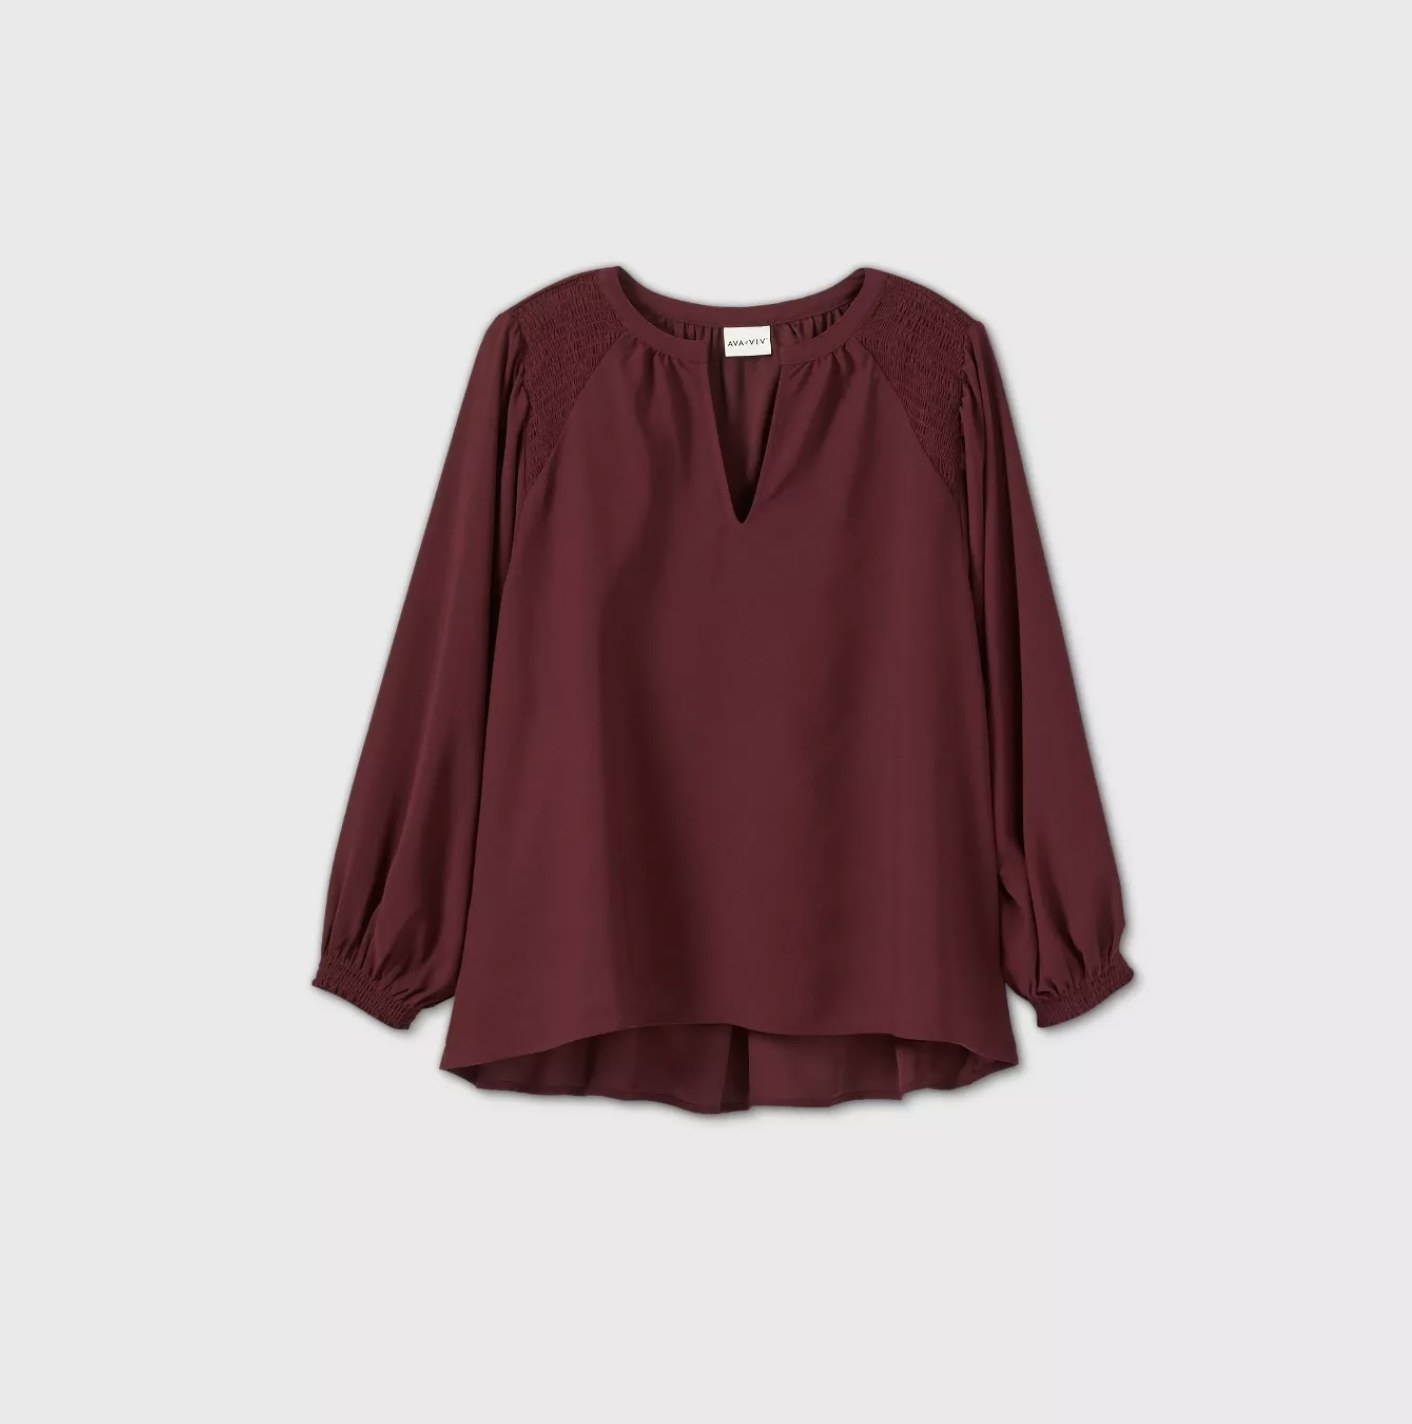 A burgundy blouse with billowy sleeves and a v-neckline